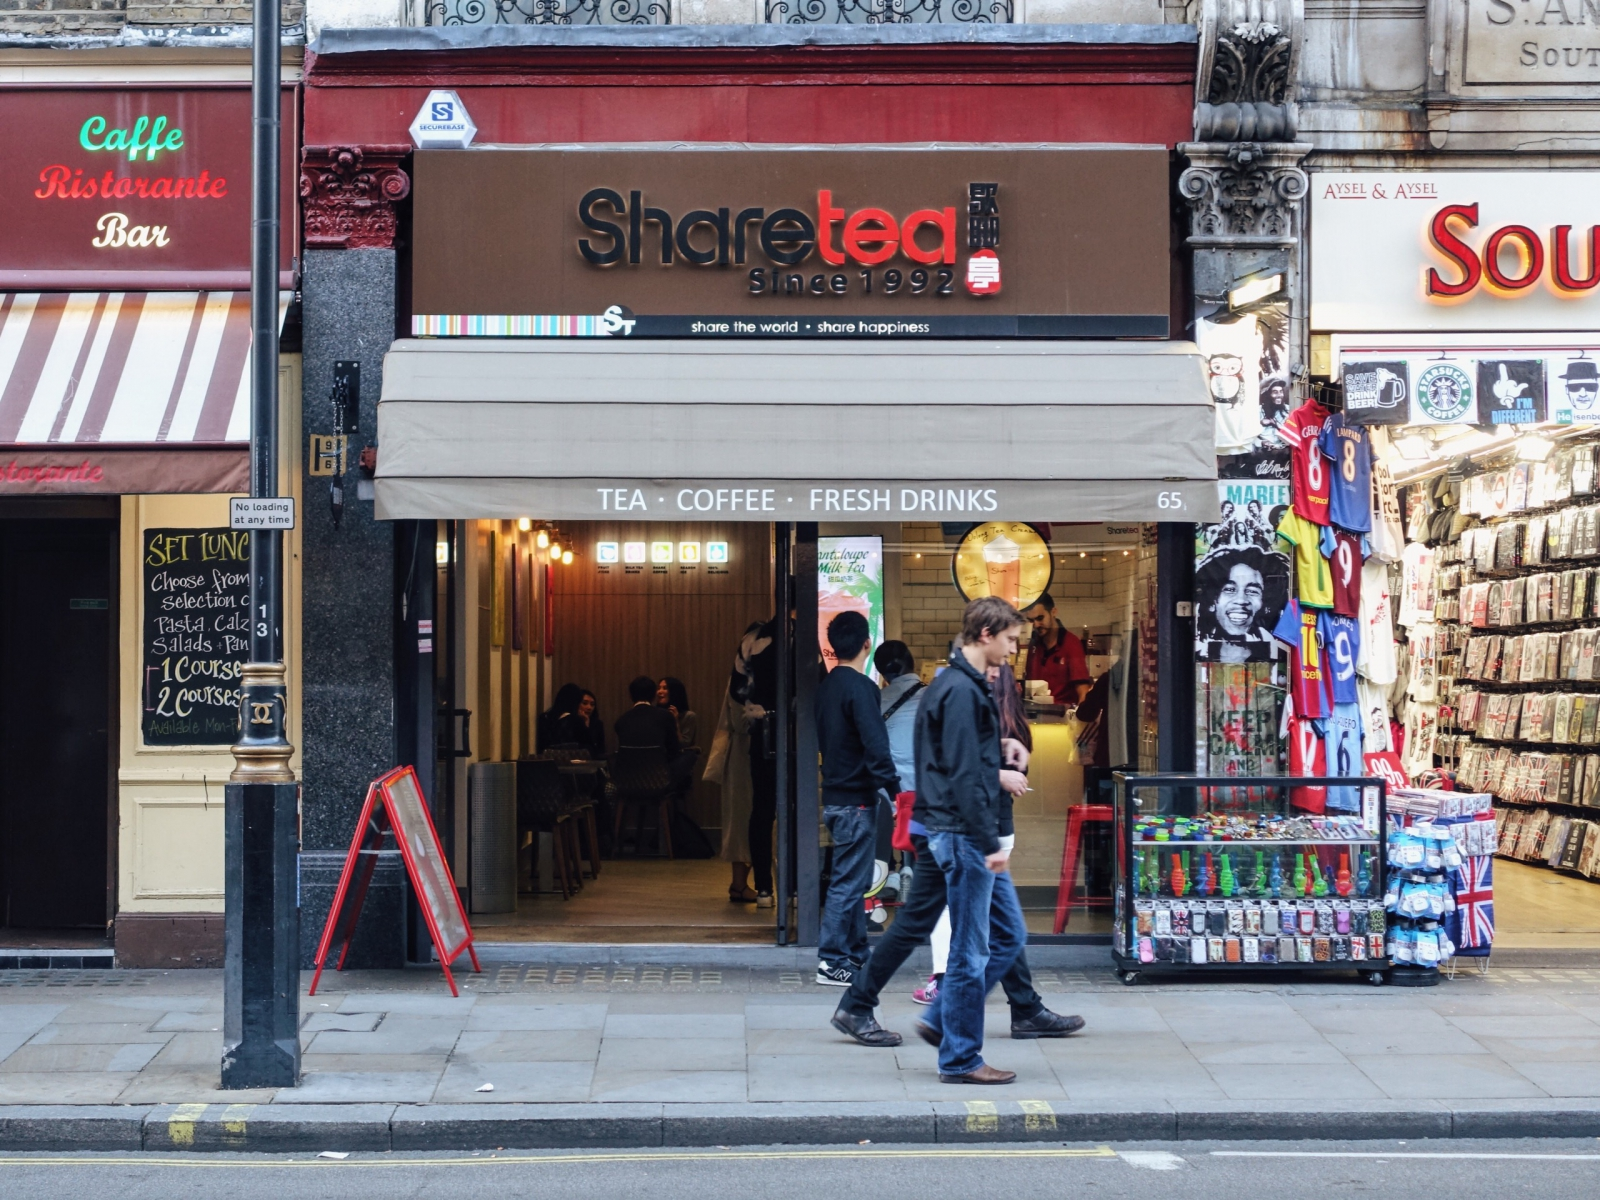 Sharetea in London